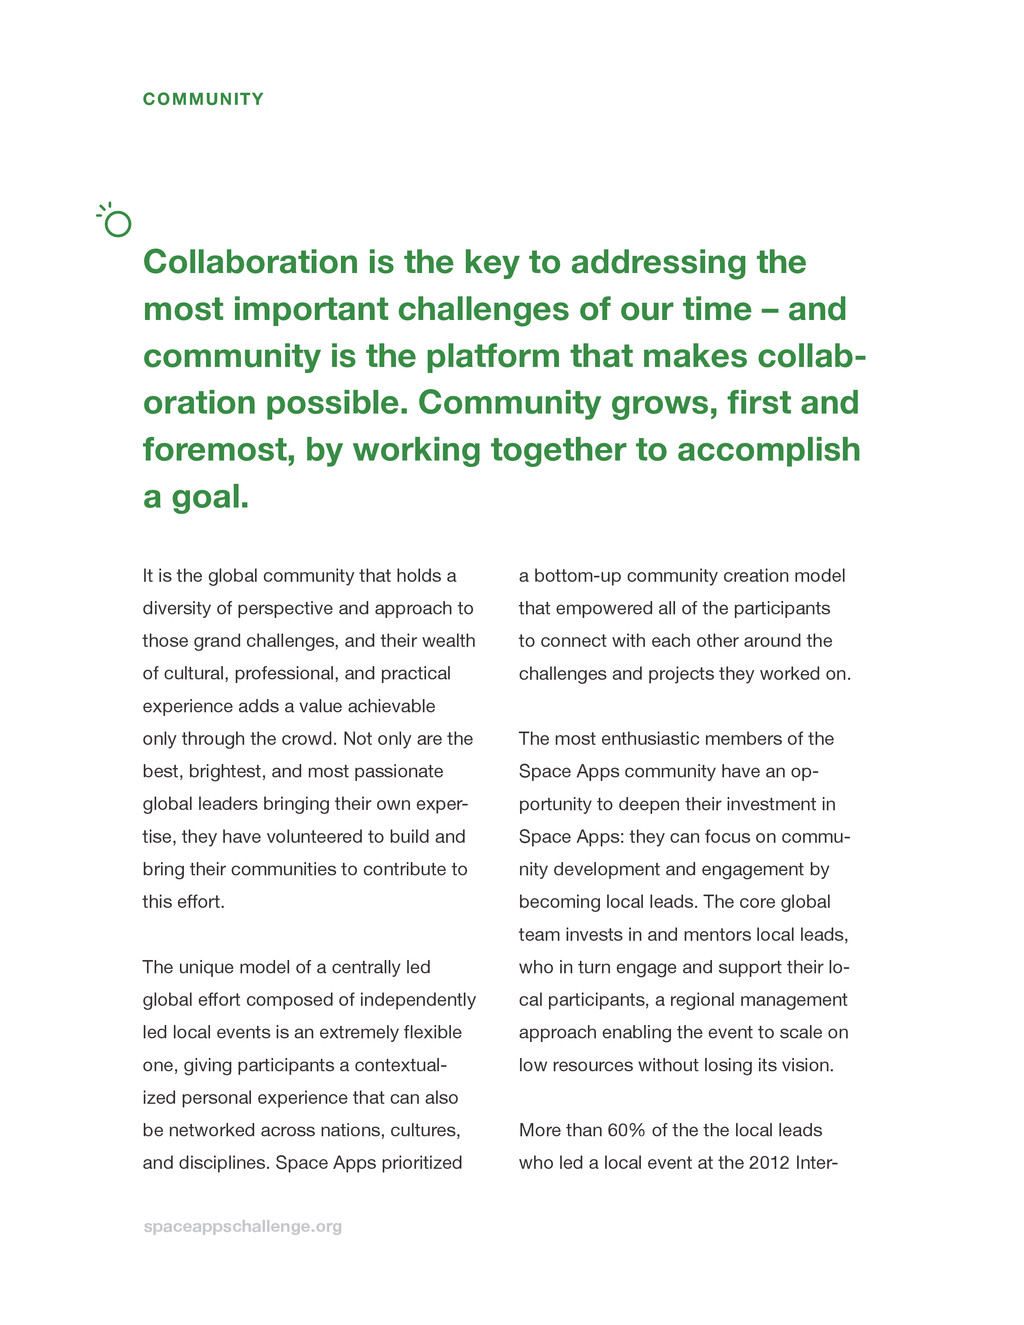 spaceappschallenge.org Collaboration is the key...